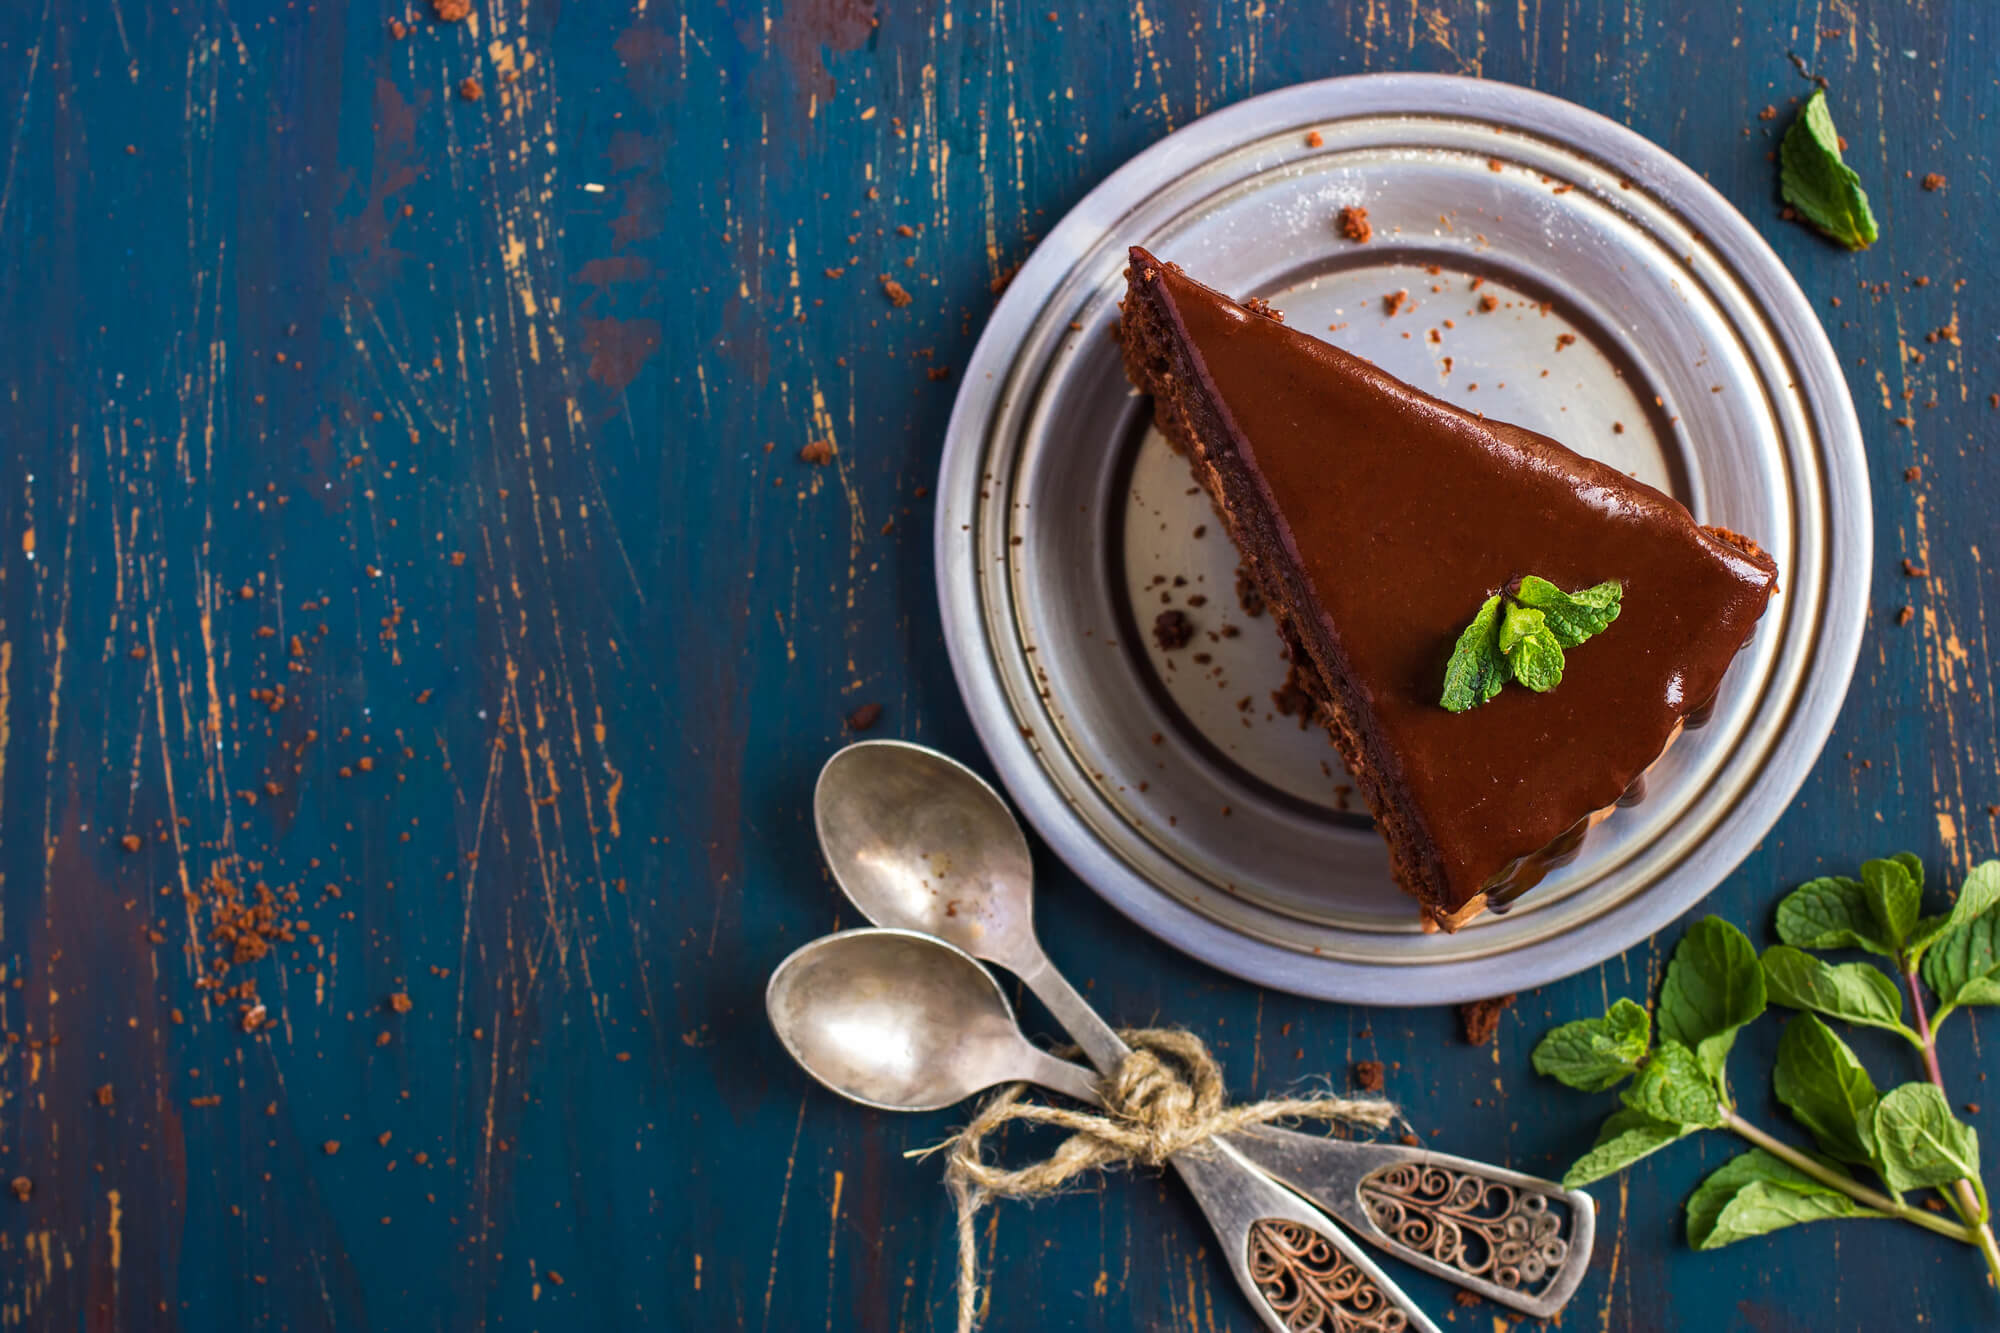 A delicious chocolate torte pairs beautifully with Eximius Coffee.